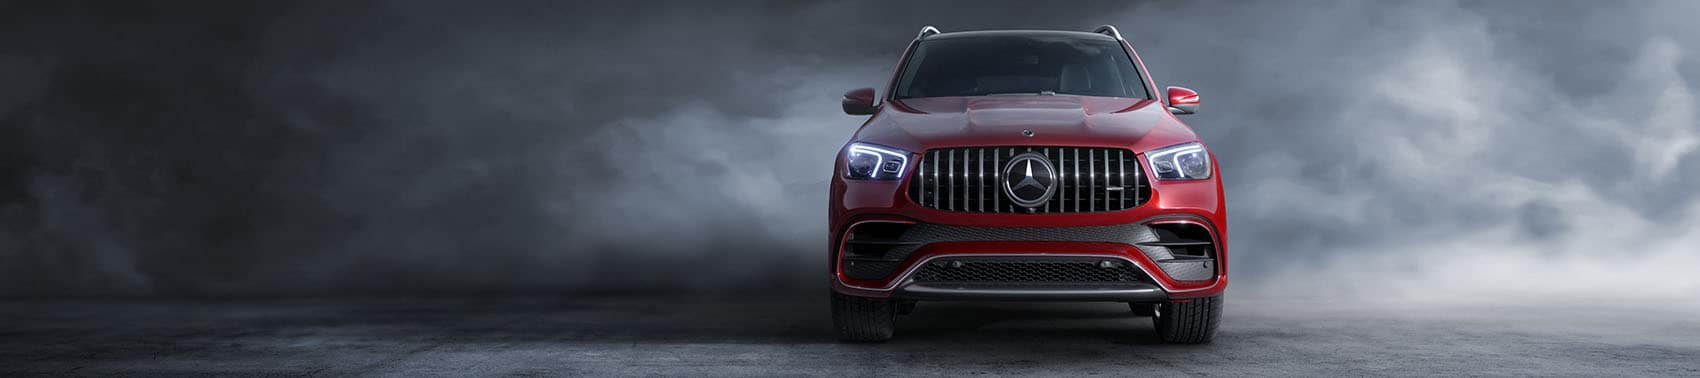 Mercedes-Benz GLE Red